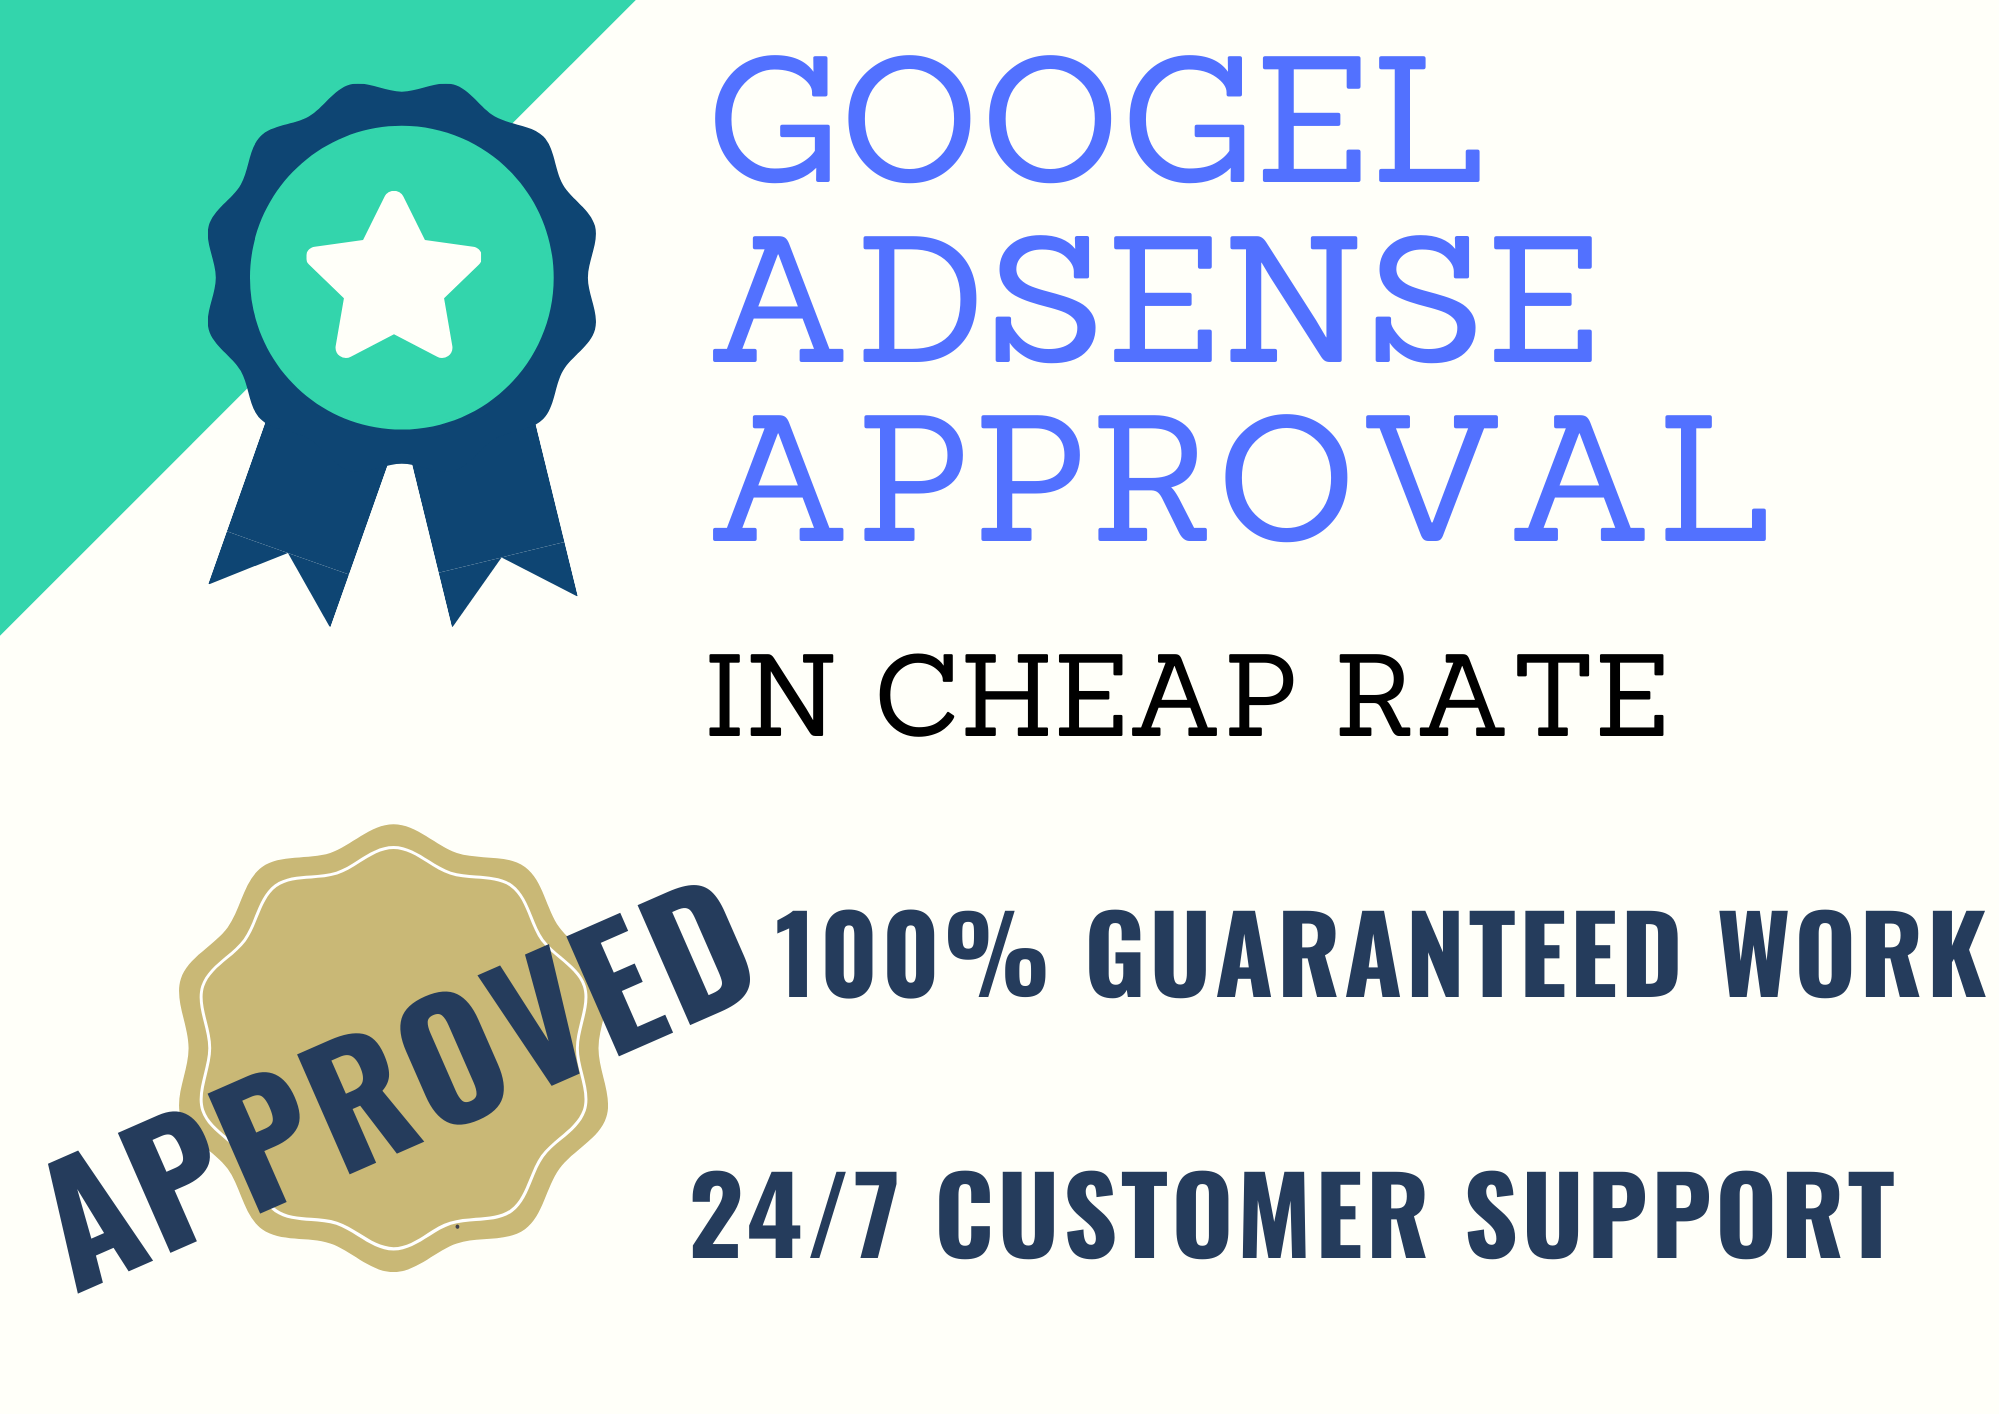 i will help you in google adsense approval